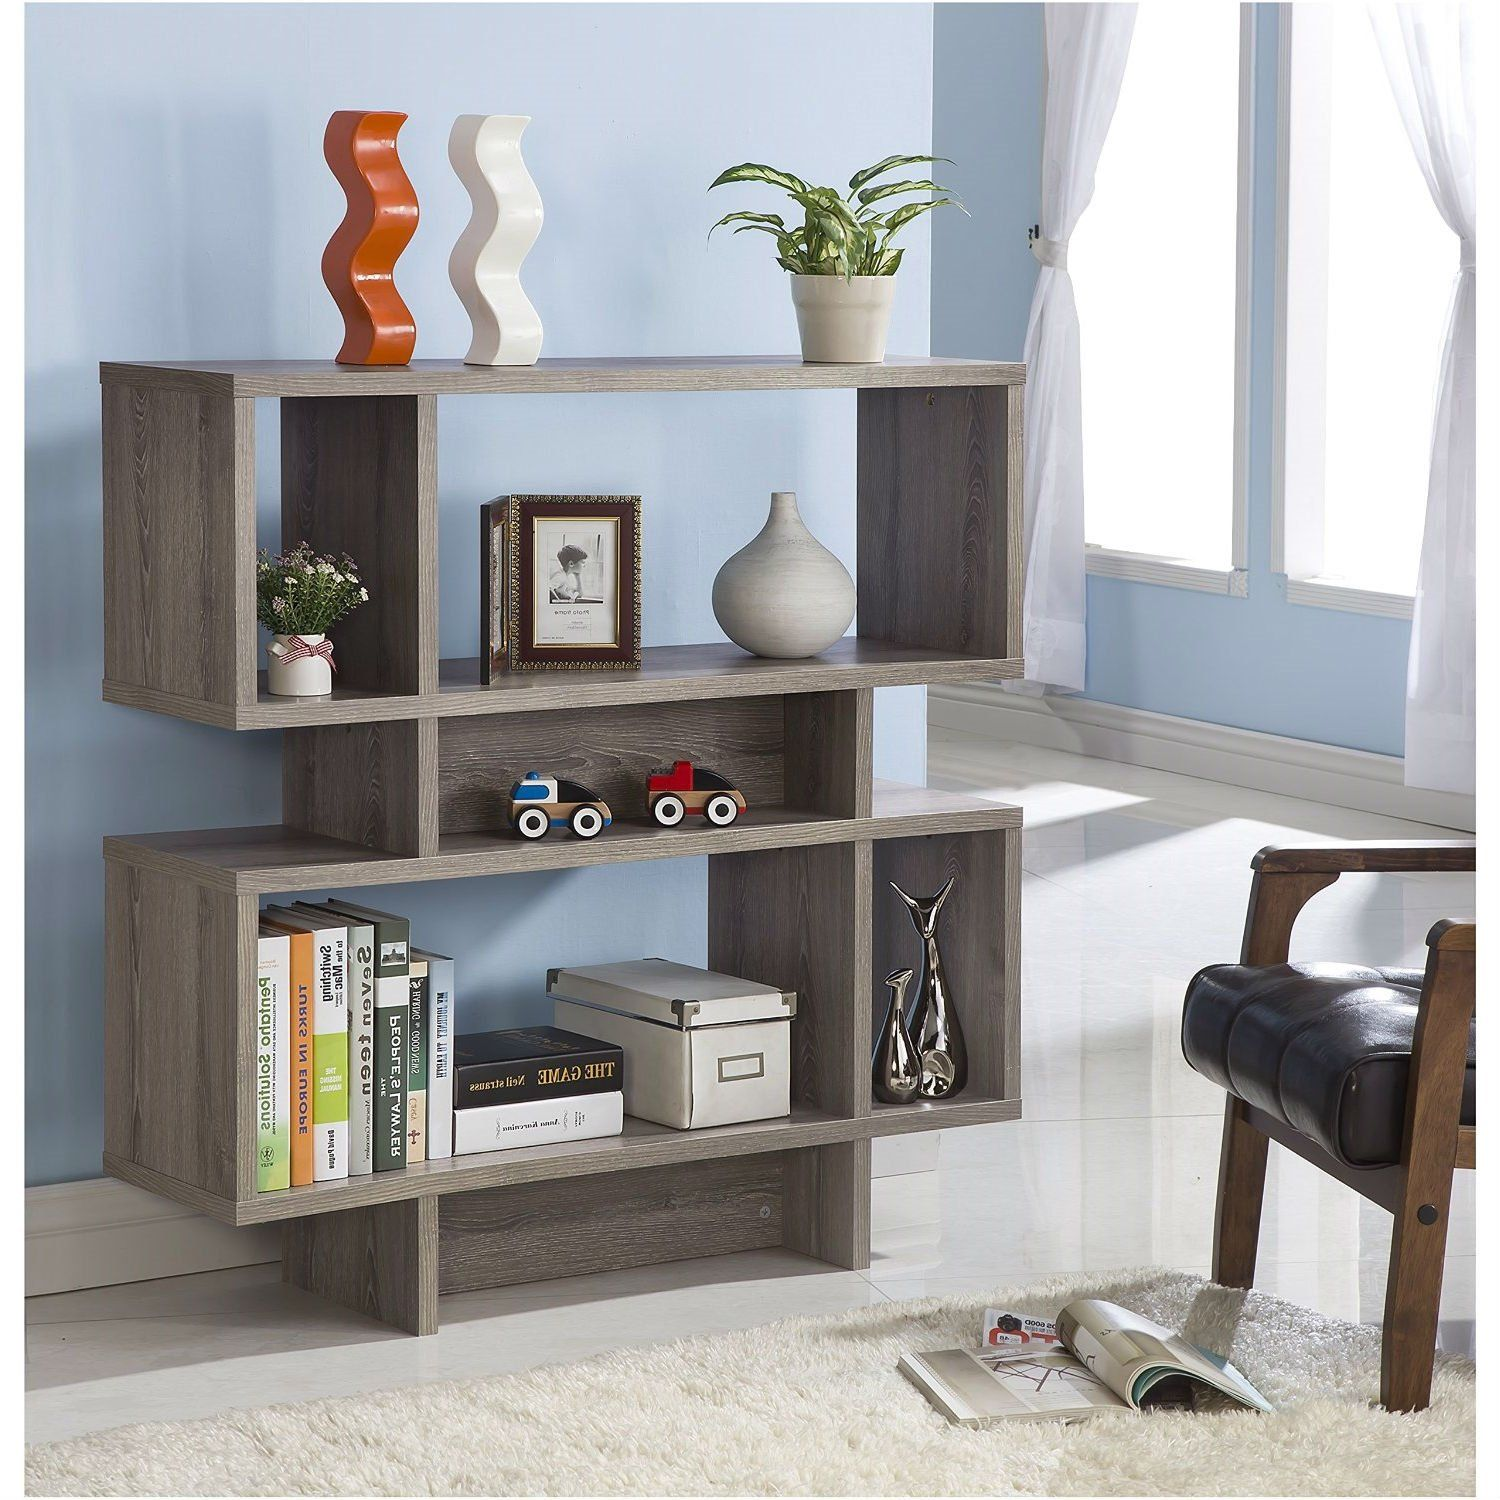 Modern Dark Taupe Wood Finish Bookcase Display Cabinet